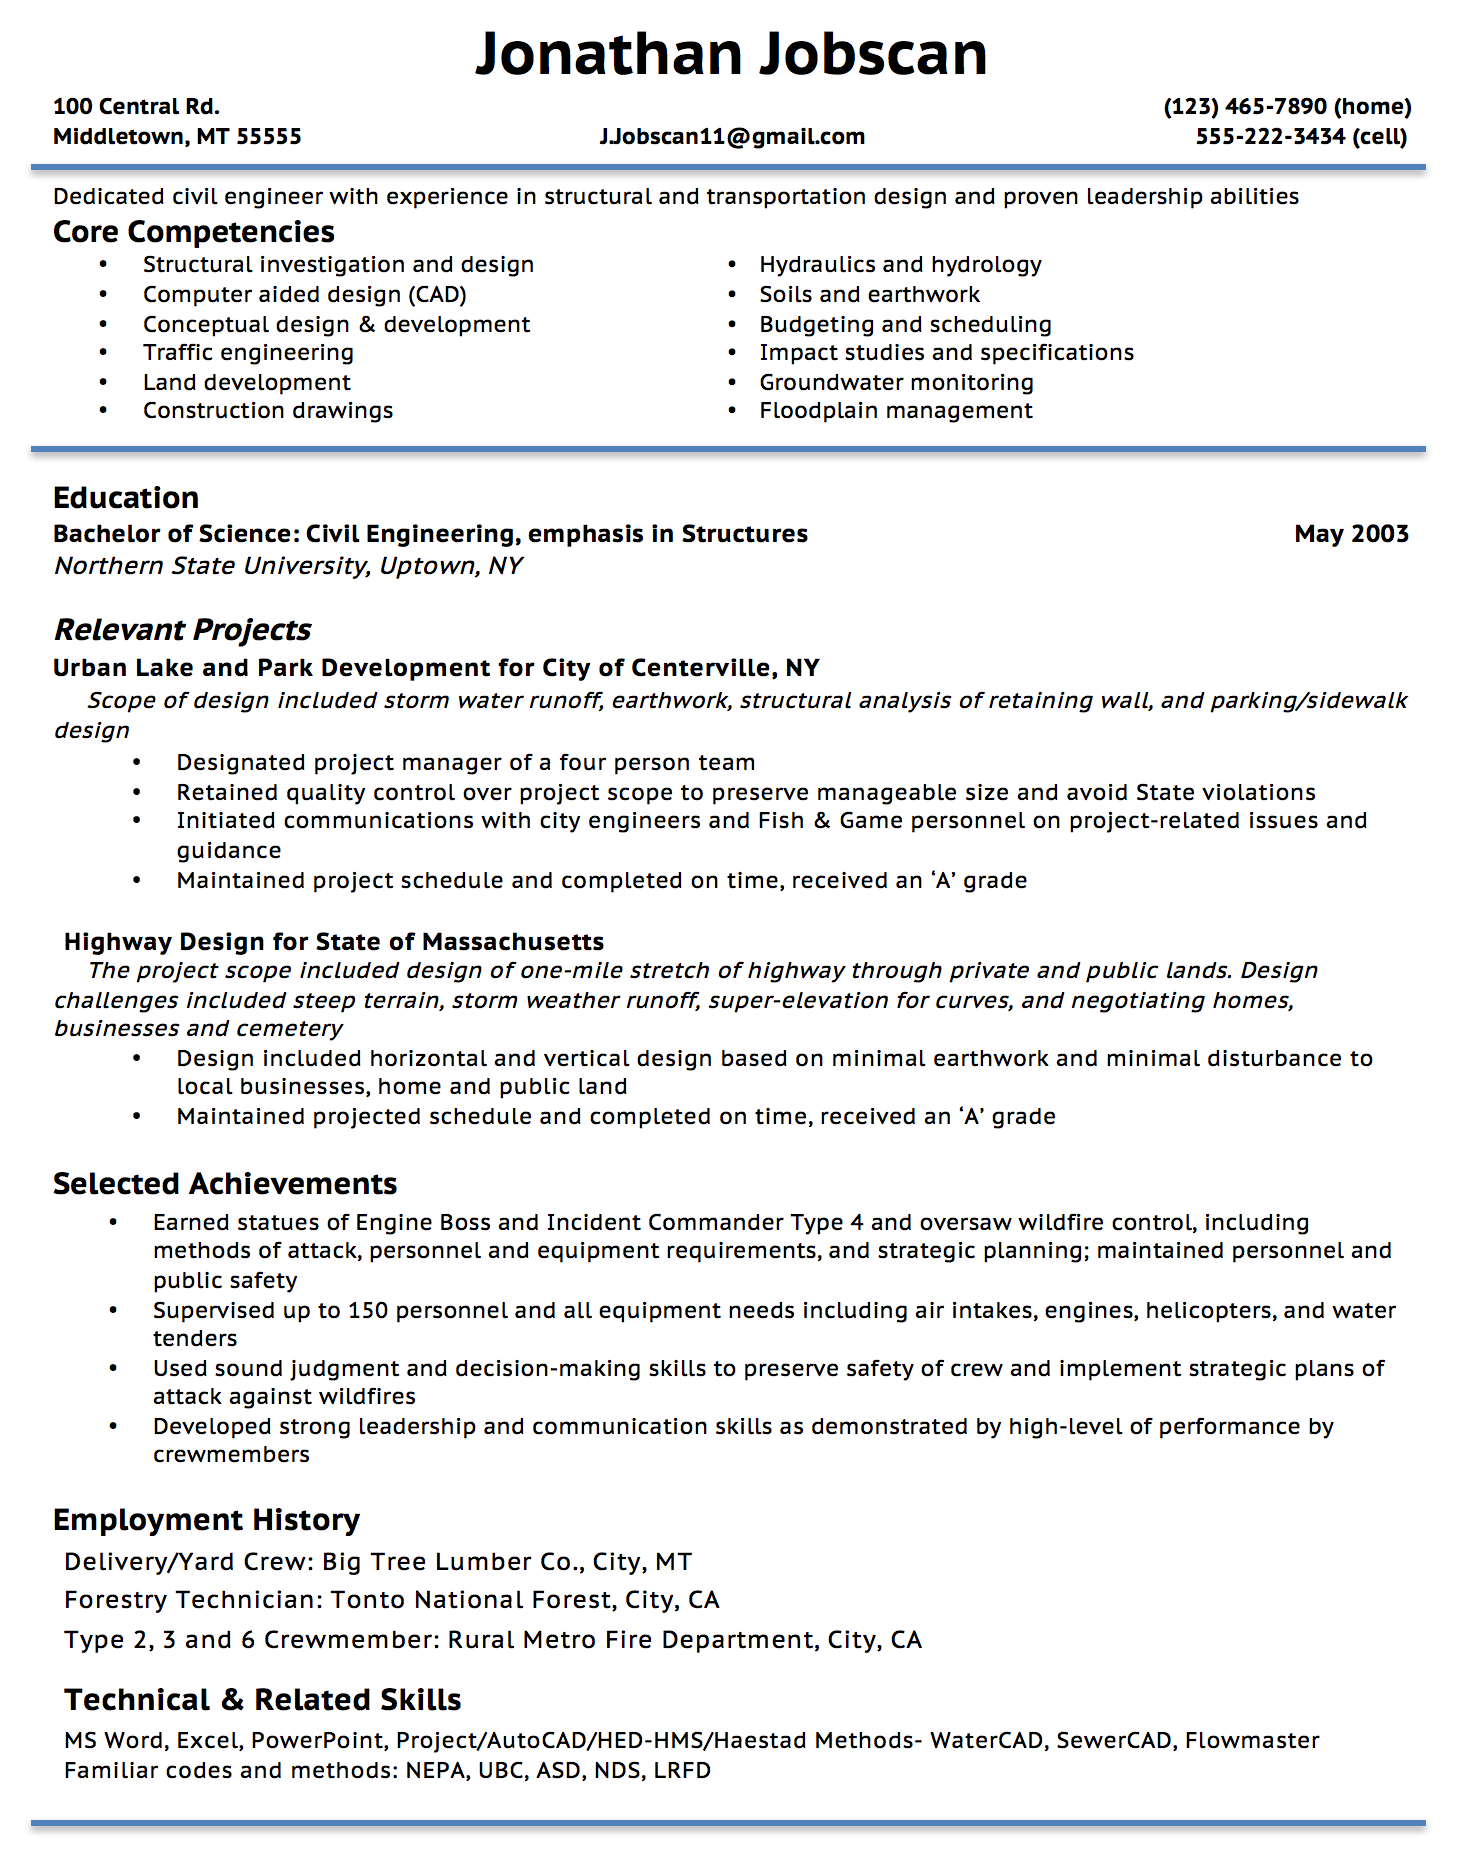 Picnictoimpeachus  Inspiring Resume Writing Guide  Jobscan With Fair Example Of A Functional Resume Format With Comely High School Resume Objective Examples Also Sales Summary Resume In Addition Resume Services Charlotte Nc And Resume For Event Coordinator As Well As Assistant Branch Manager Resume Additionally Personal Shopper Resume From Jobscanco With Picnictoimpeachus  Fair Resume Writing Guide  Jobscan With Comely Example Of A Functional Resume Format And Inspiring High School Resume Objective Examples Also Sales Summary Resume In Addition Resume Services Charlotte Nc From Jobscanco